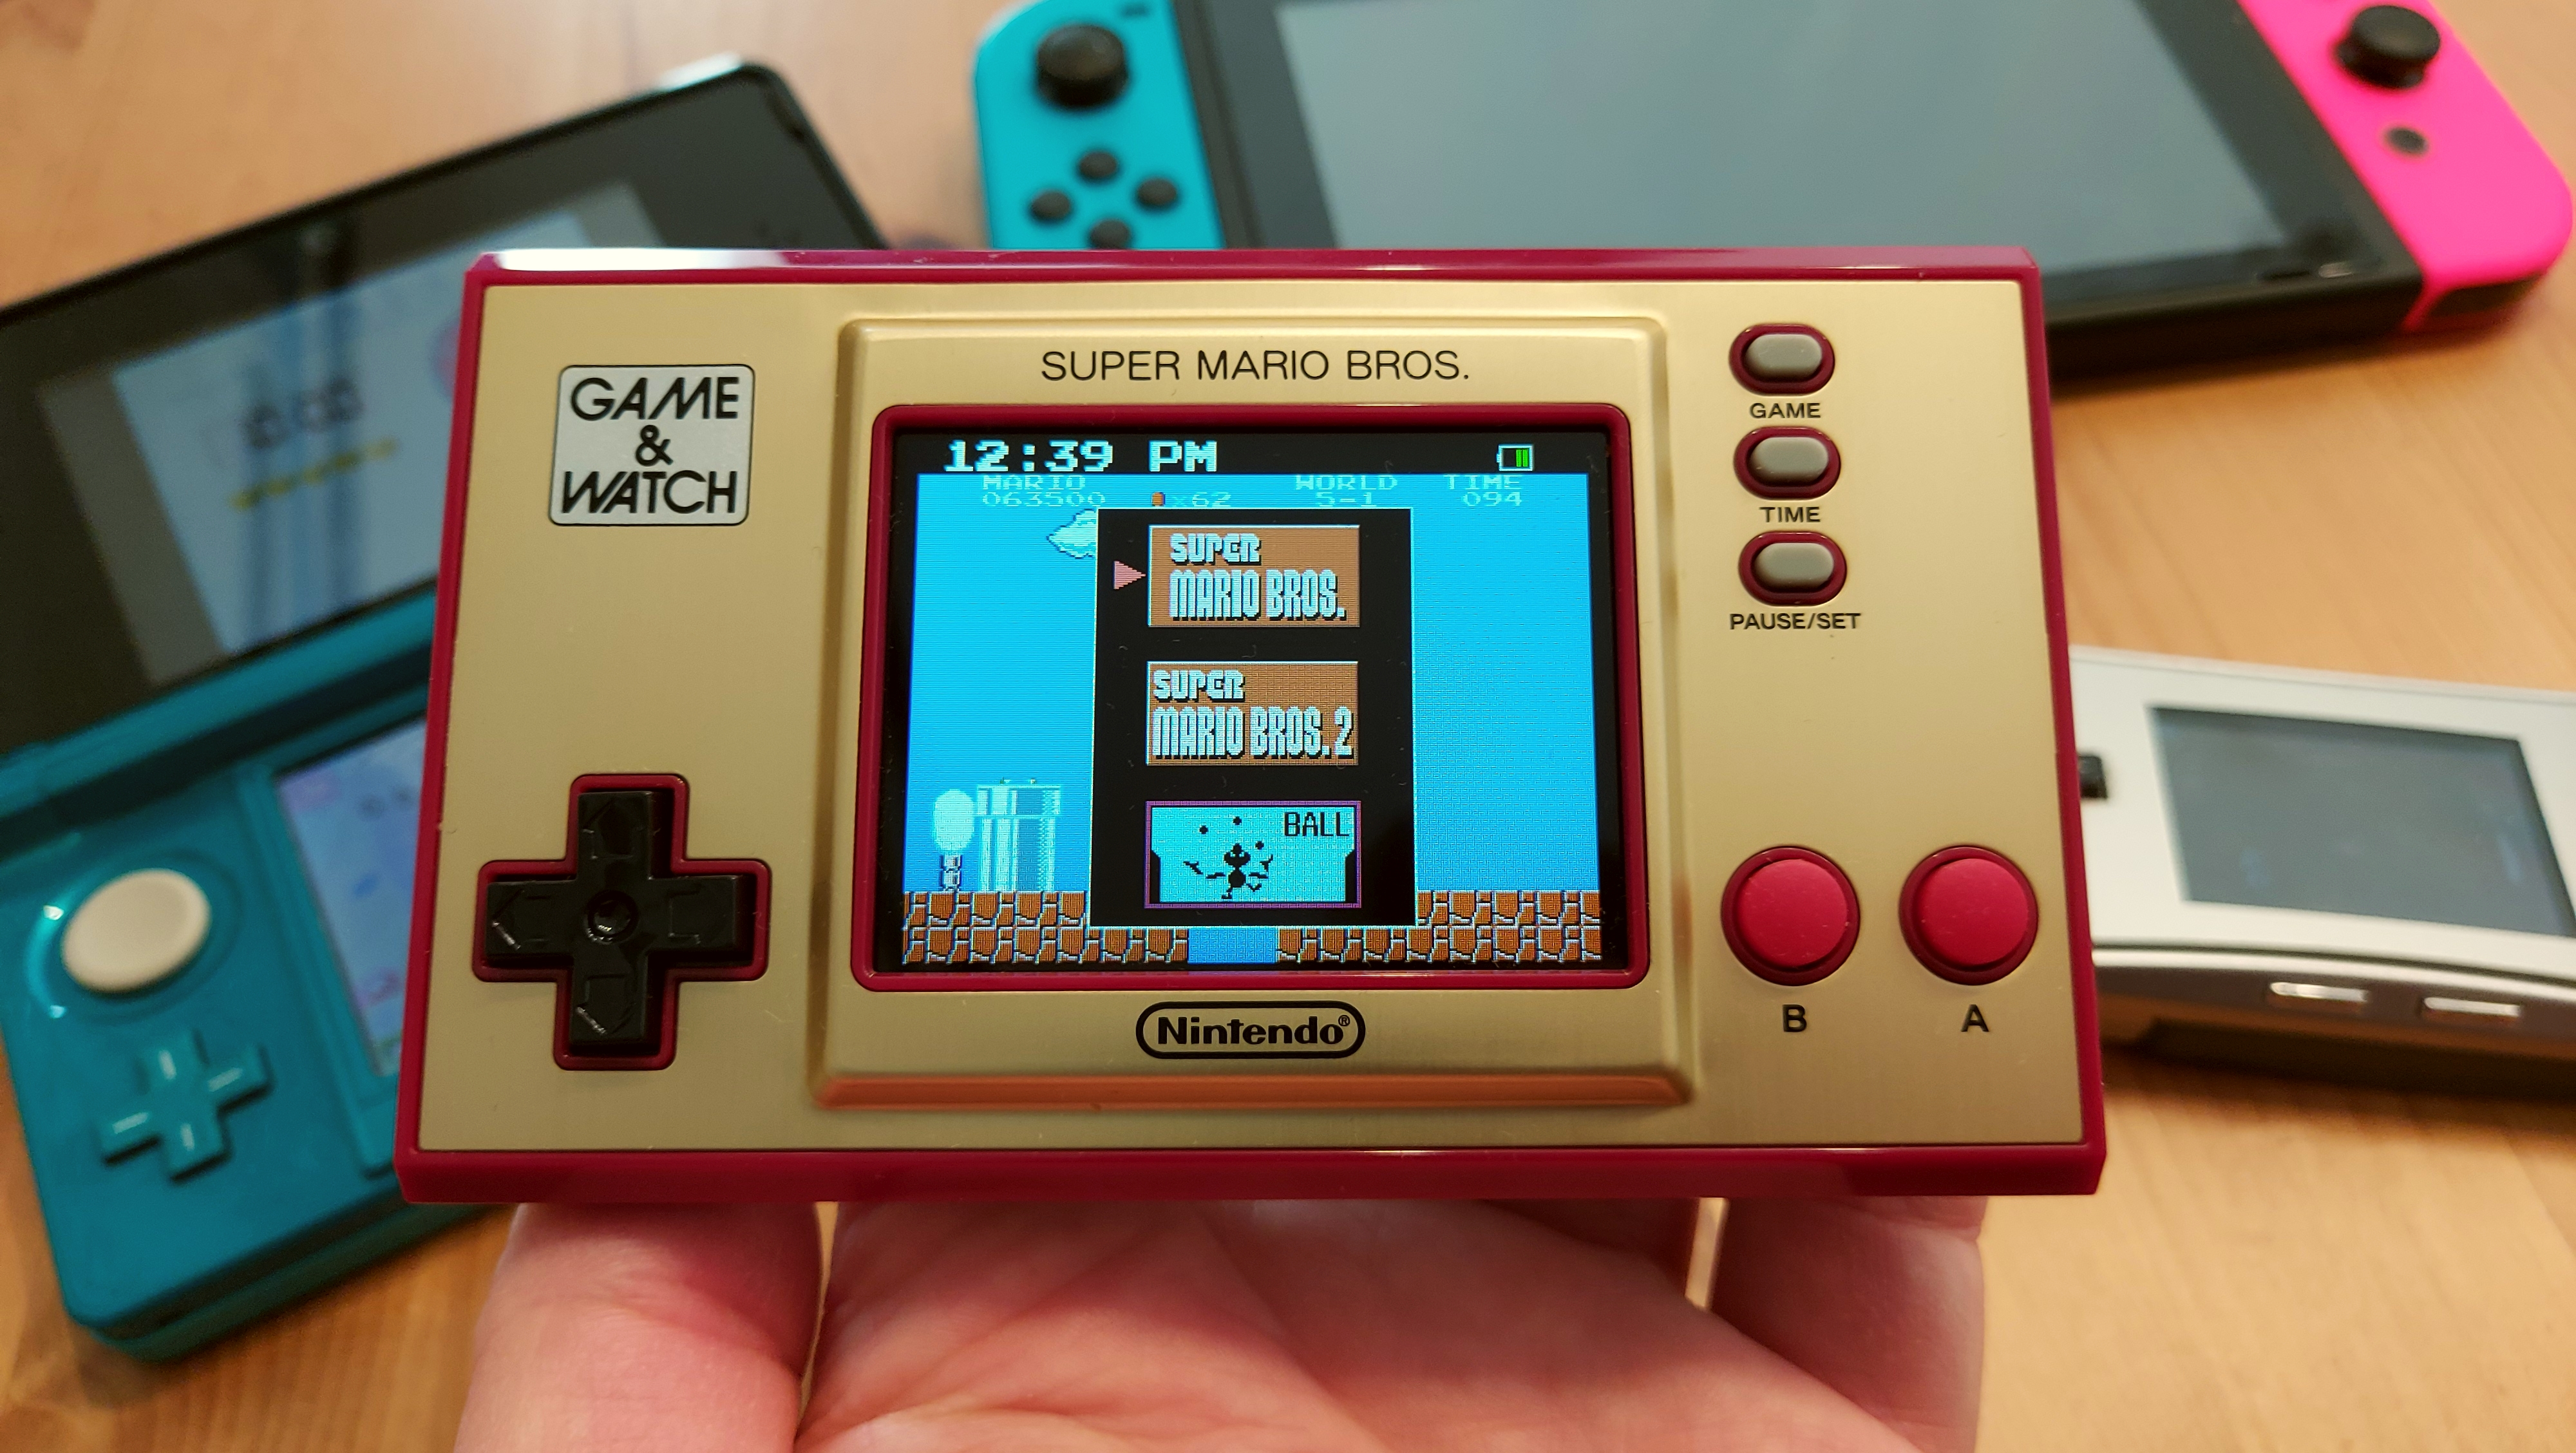 Game & Watch: Super Mario Bros: The collector's item in the test